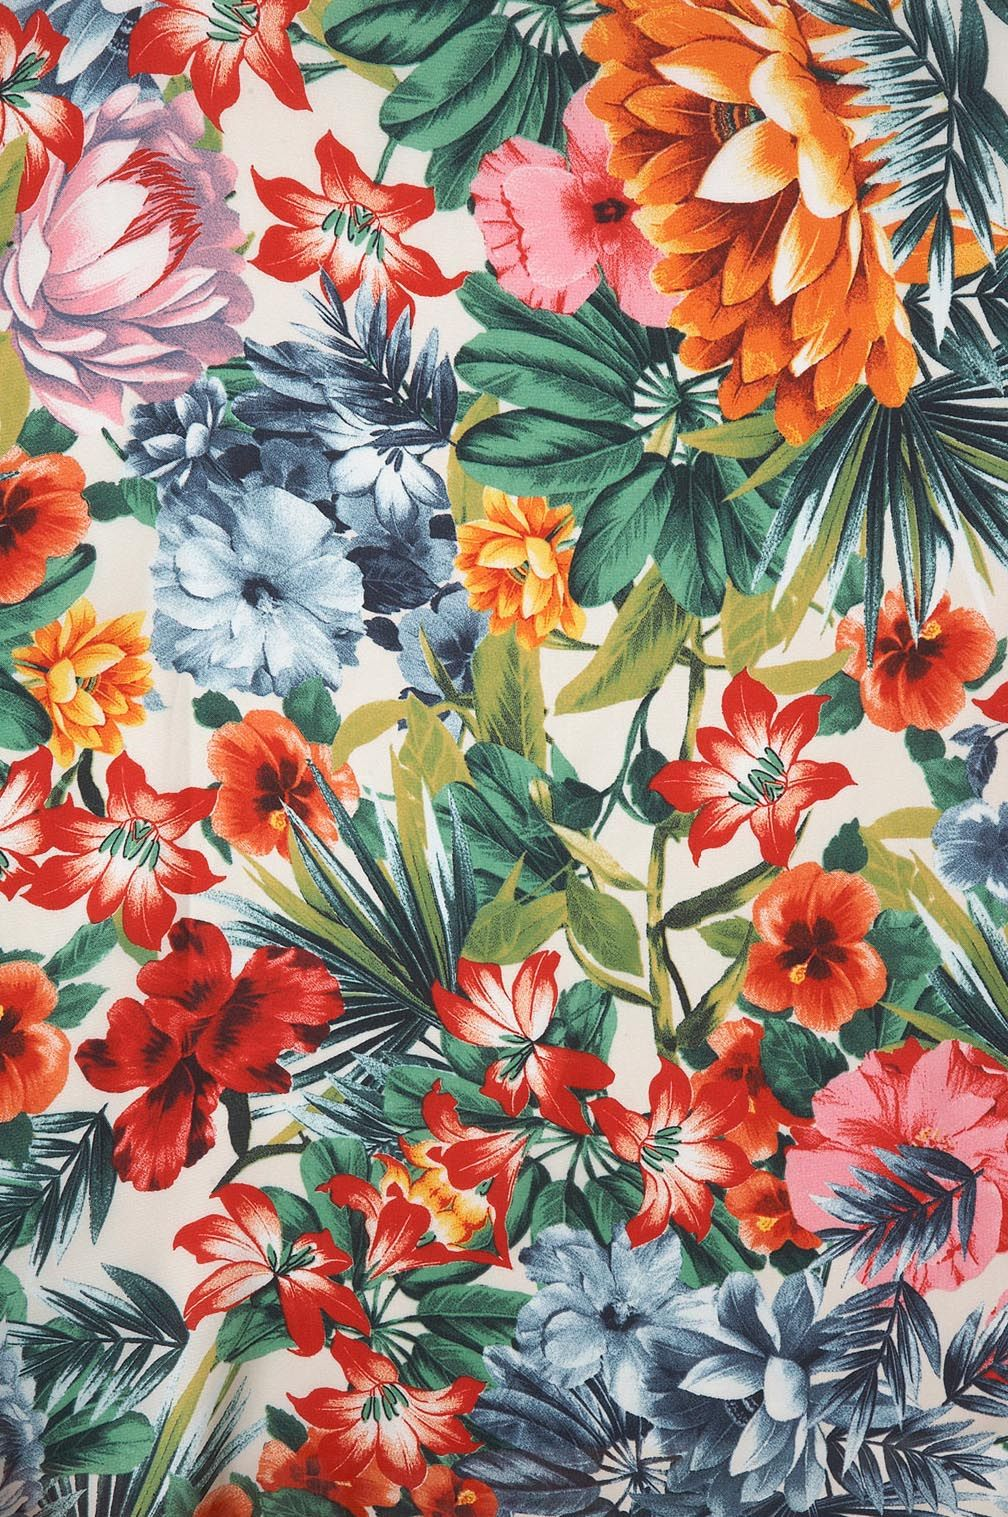 Wallpaper iphone tropical - Might Be Funny If They Have A Really Cheesy Floral Print Wallpaper In Their Shop